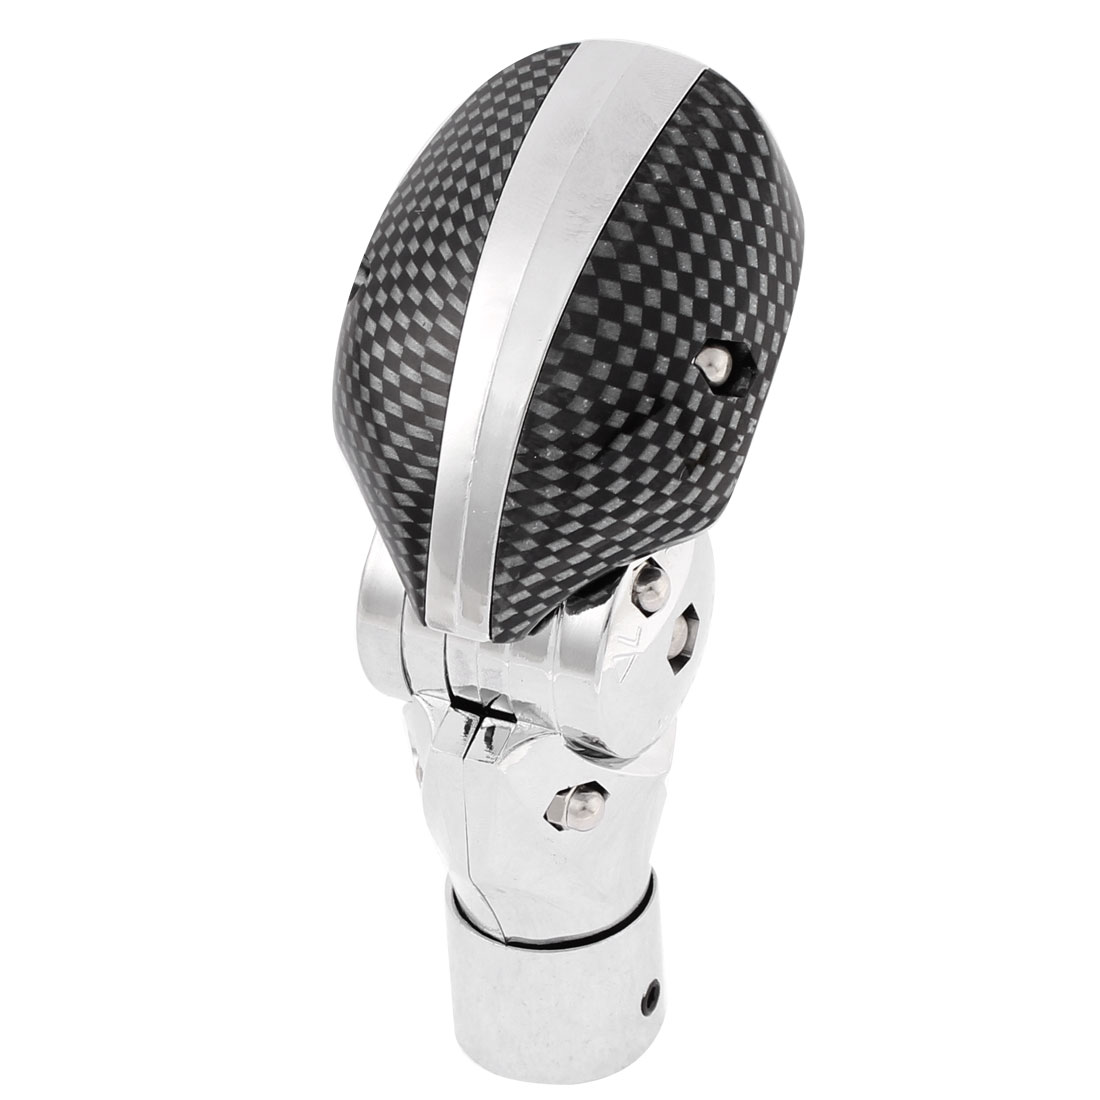 Auto Car Carbon Fiber Texture Curved Gear Shift Knob